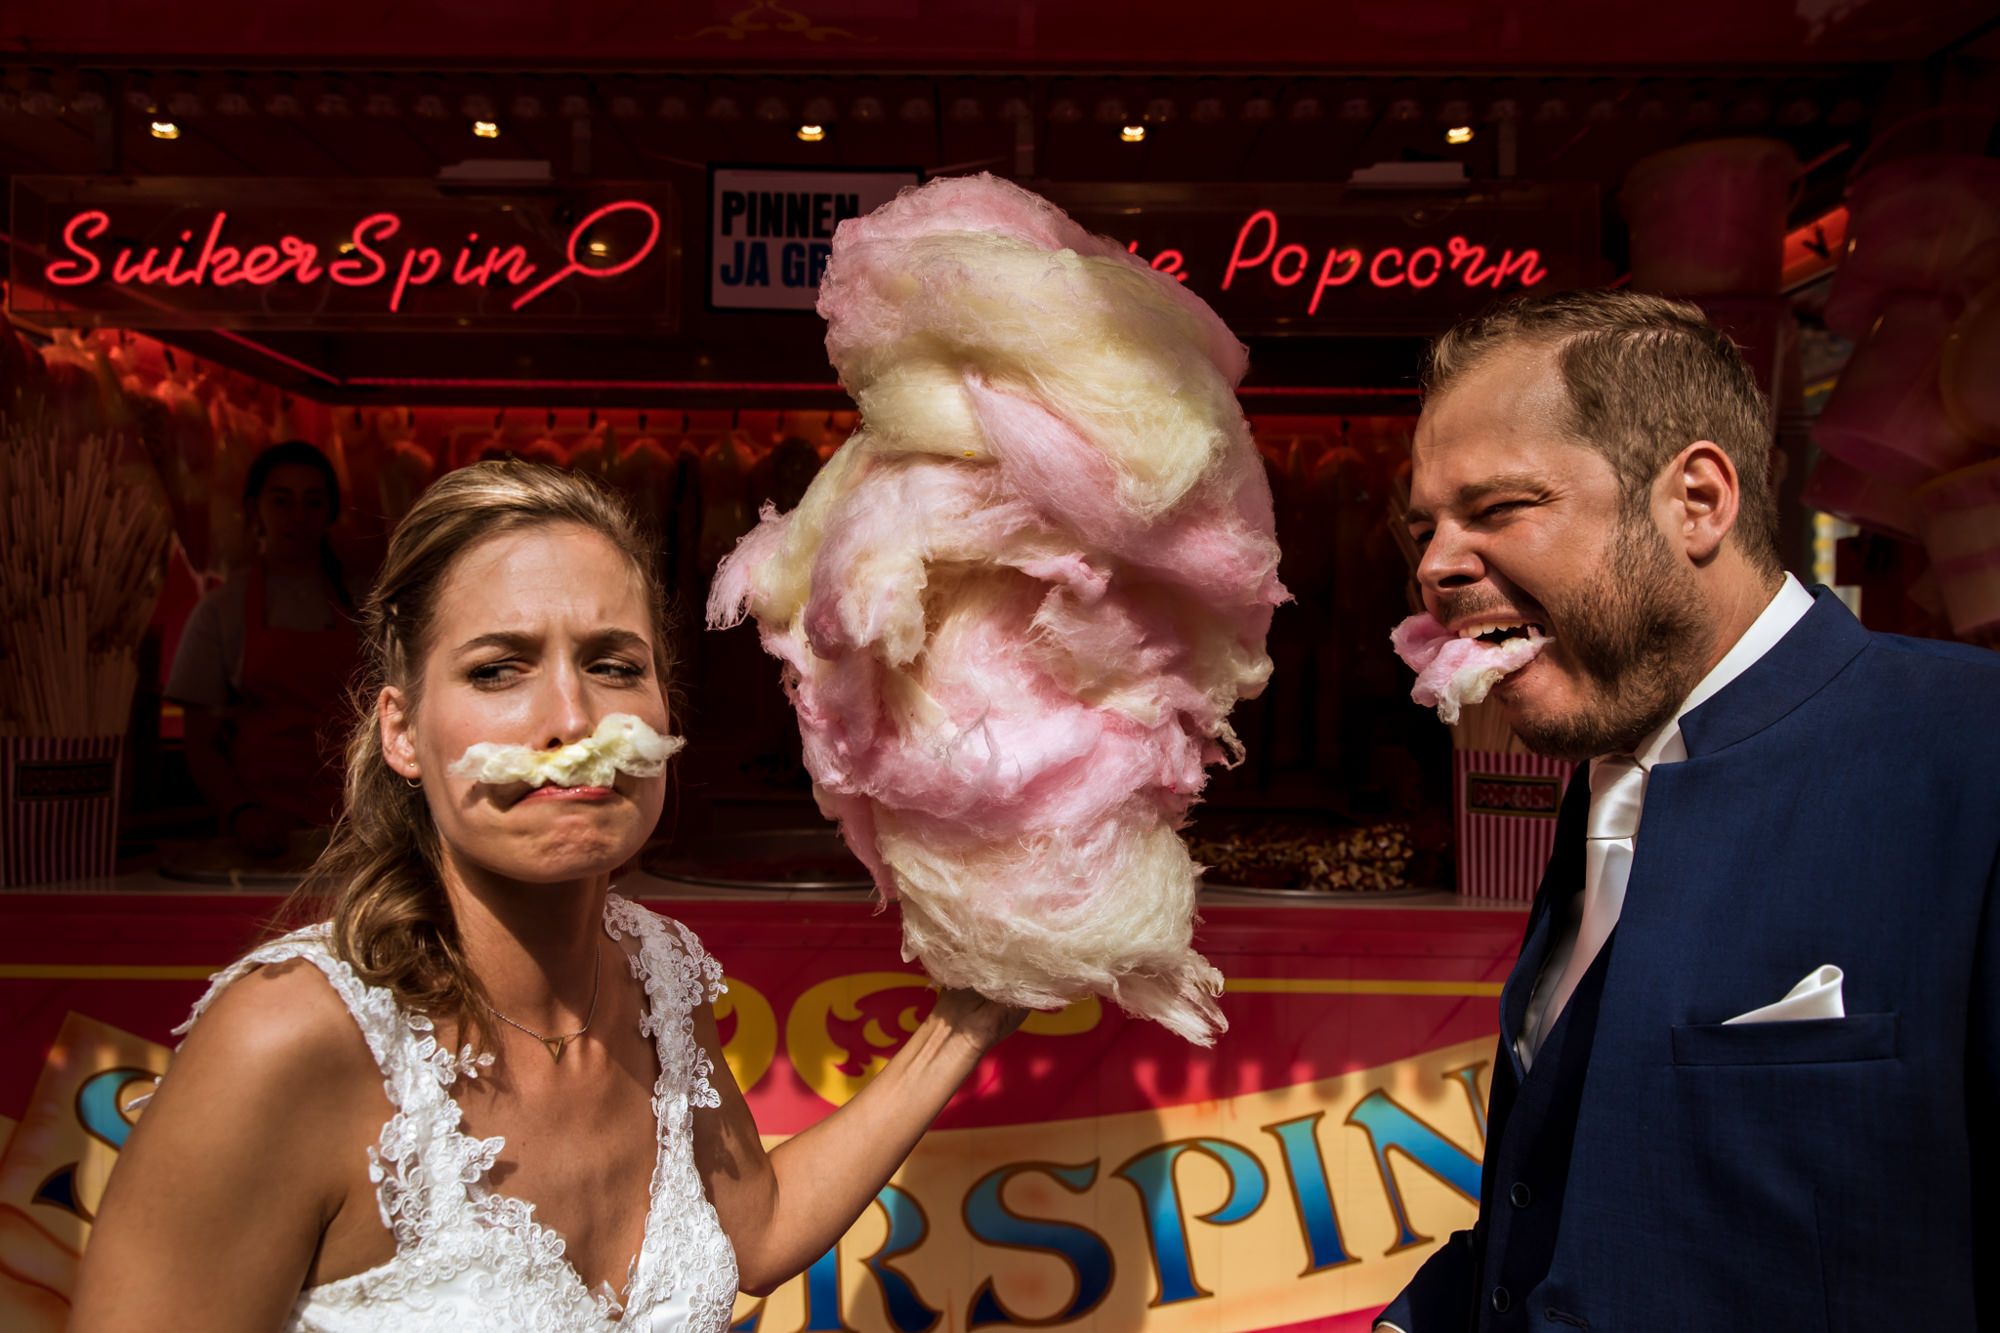 funny-bride-and-groom-portrait-eating-cotton-candy-worlds-best-wedding-photos-fotobelle-netherlands-wedding-photographers